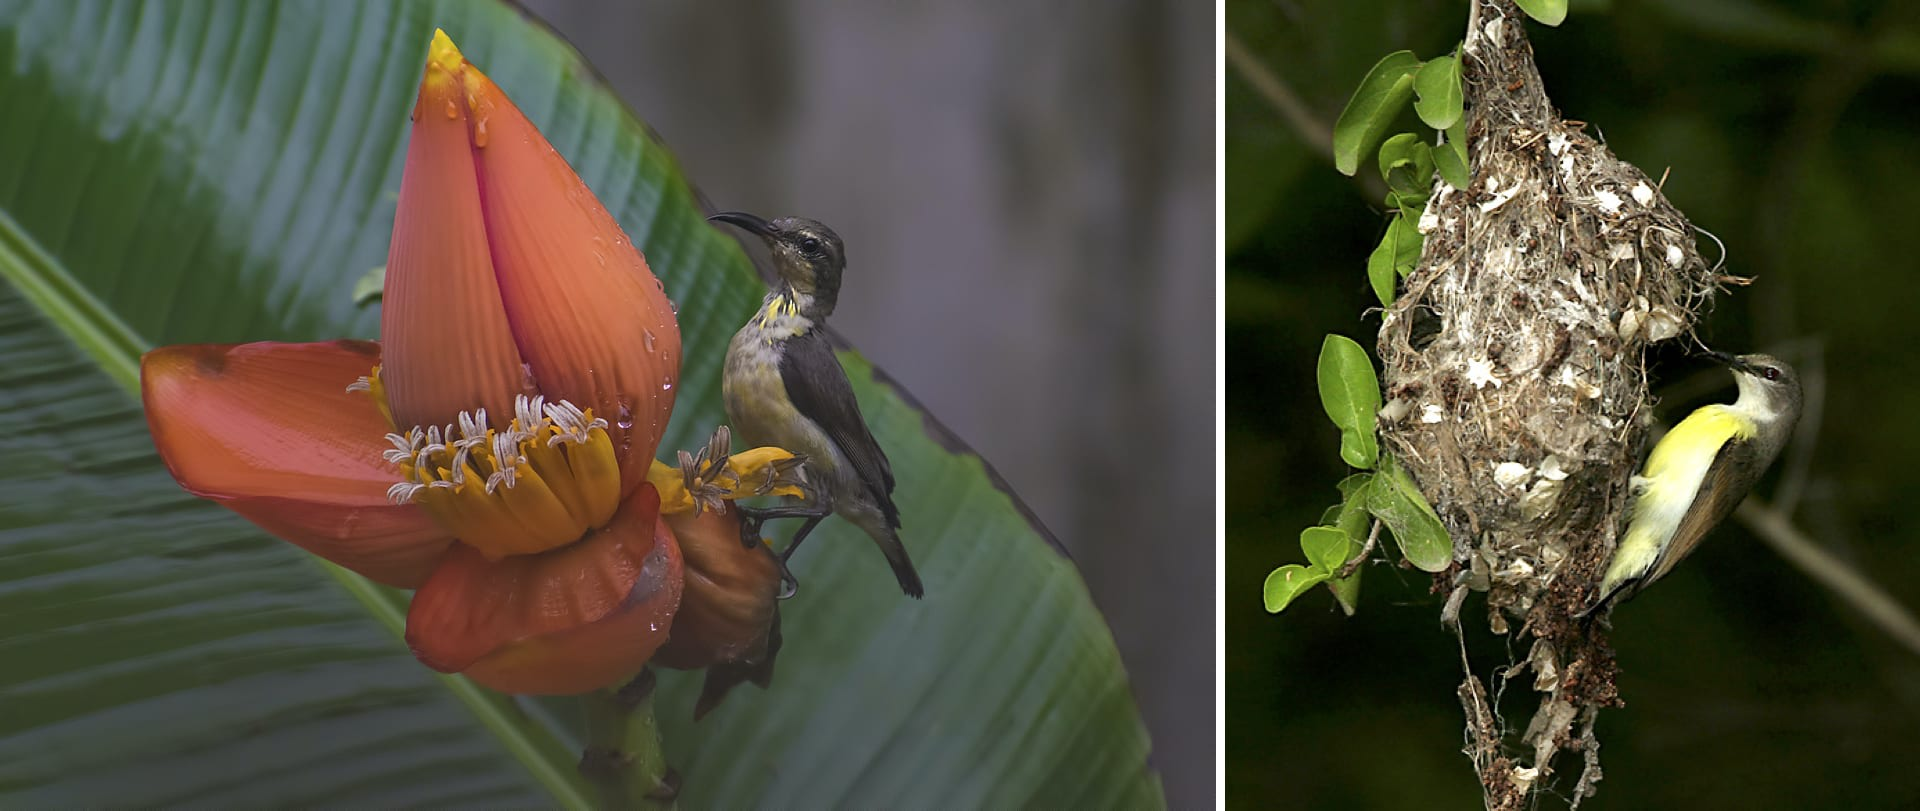 (Left) The female purple sunbird is olive brown above with a yellowish underside. Sunbirds need to perch to feed, unlike hummingbirds that can feed while hovering over a flower. (Right) Sunbirds use plant fibre, cobwebs, and other stray bits they find to build their nests. They usually suspend the nest from thorny plants, which provides some defence against predators. It is the female (purple-rumped sunbird picture here) that does all the hard work of building the nest. Photos: Arijit Mondal (left), J.M.Garg, CC BY-SA 4.0 (right)